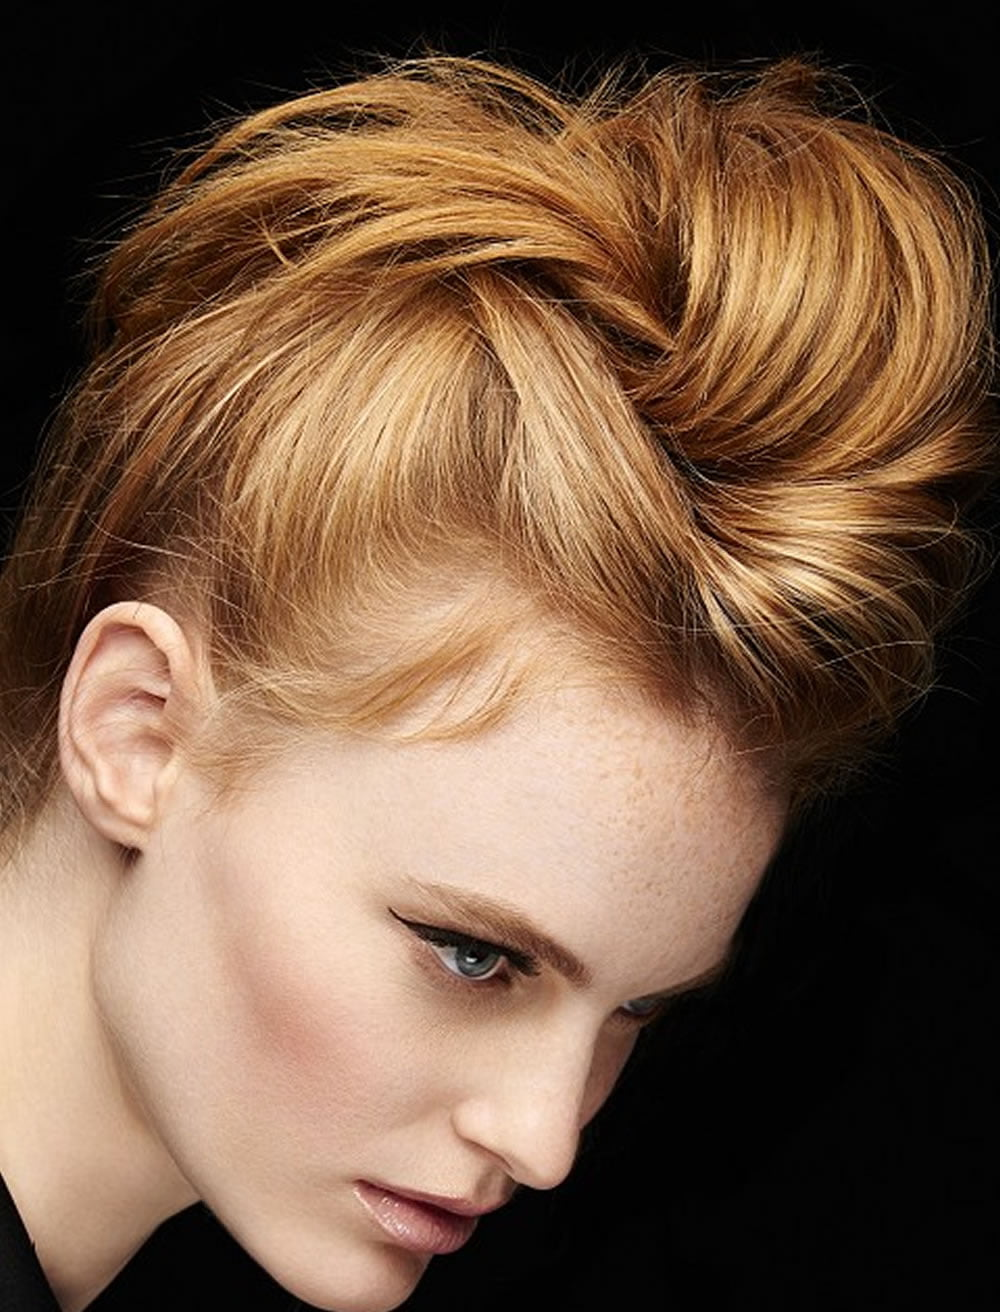 Hairstyle For Prom Round Face : Perfect updo hairstyles for prom round